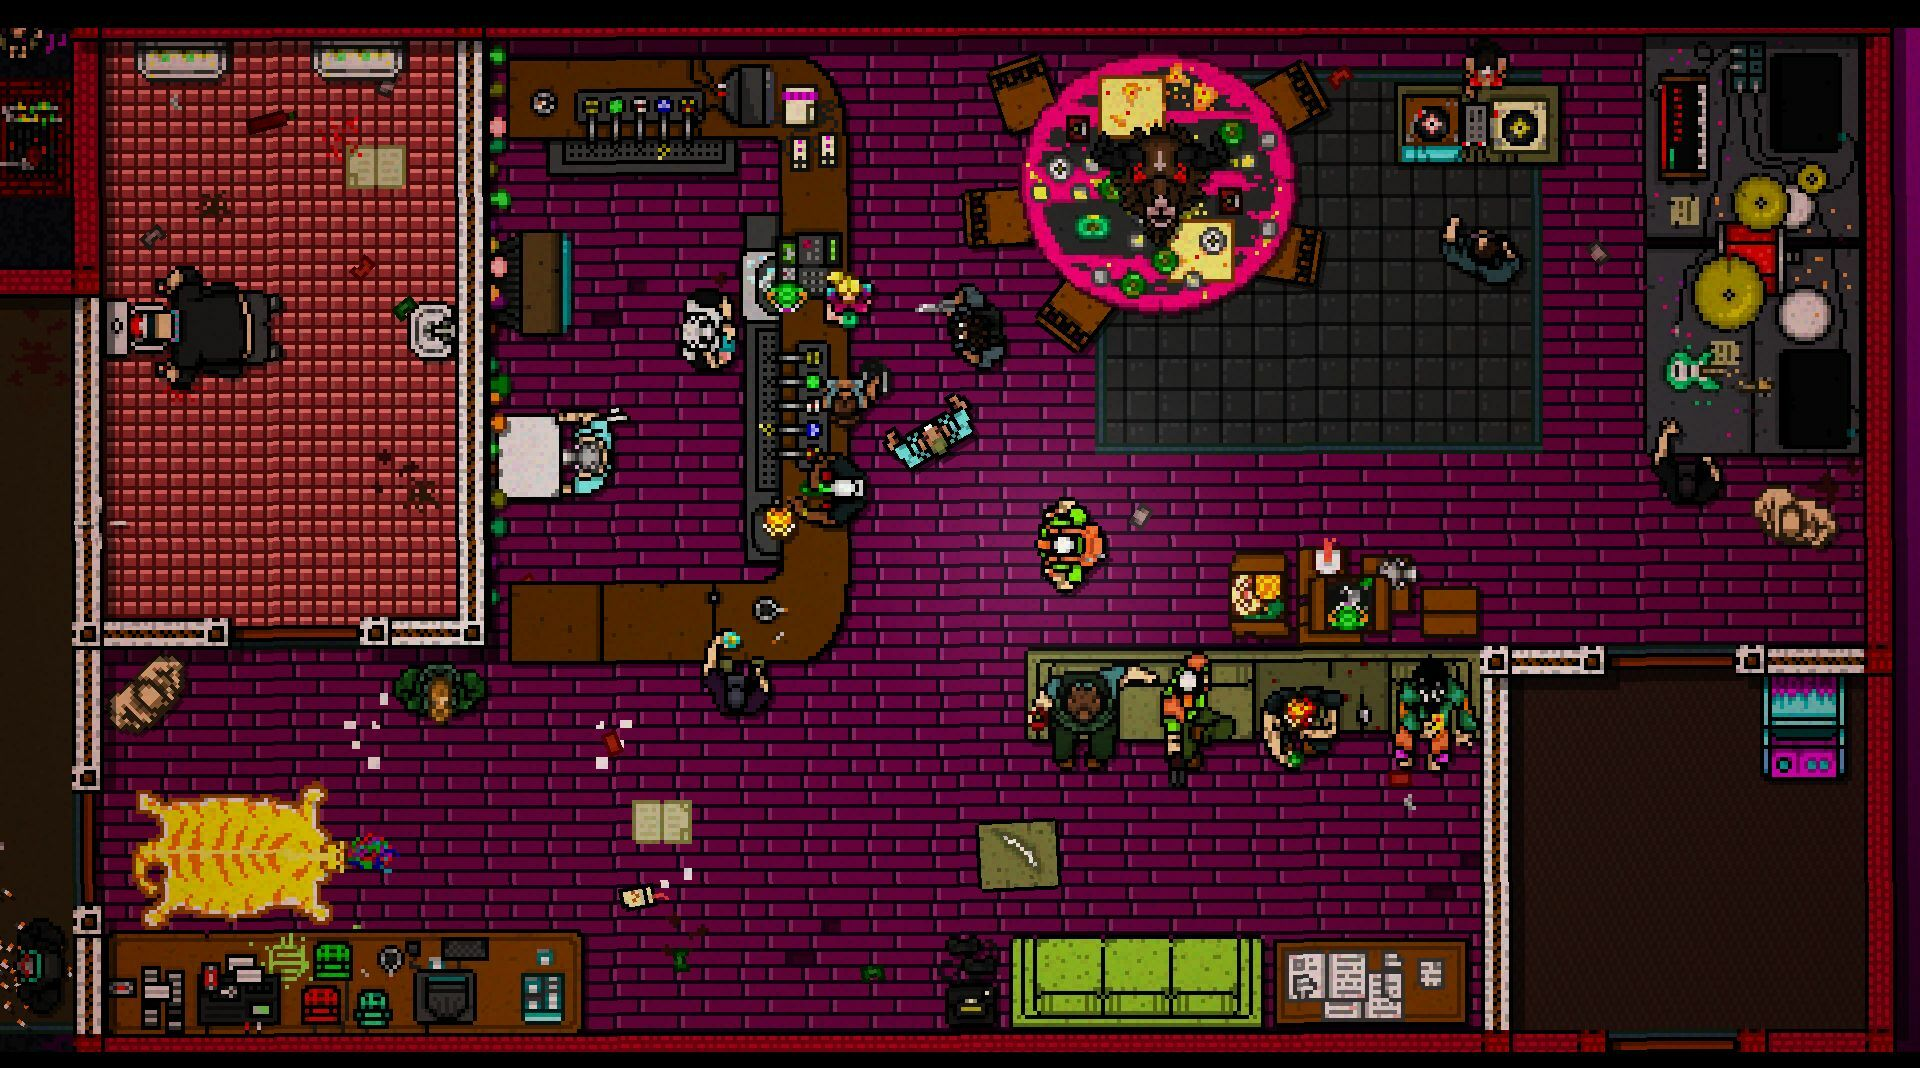 hotline-miami-2-wrong-number-special-edition-pc-screenshot-03